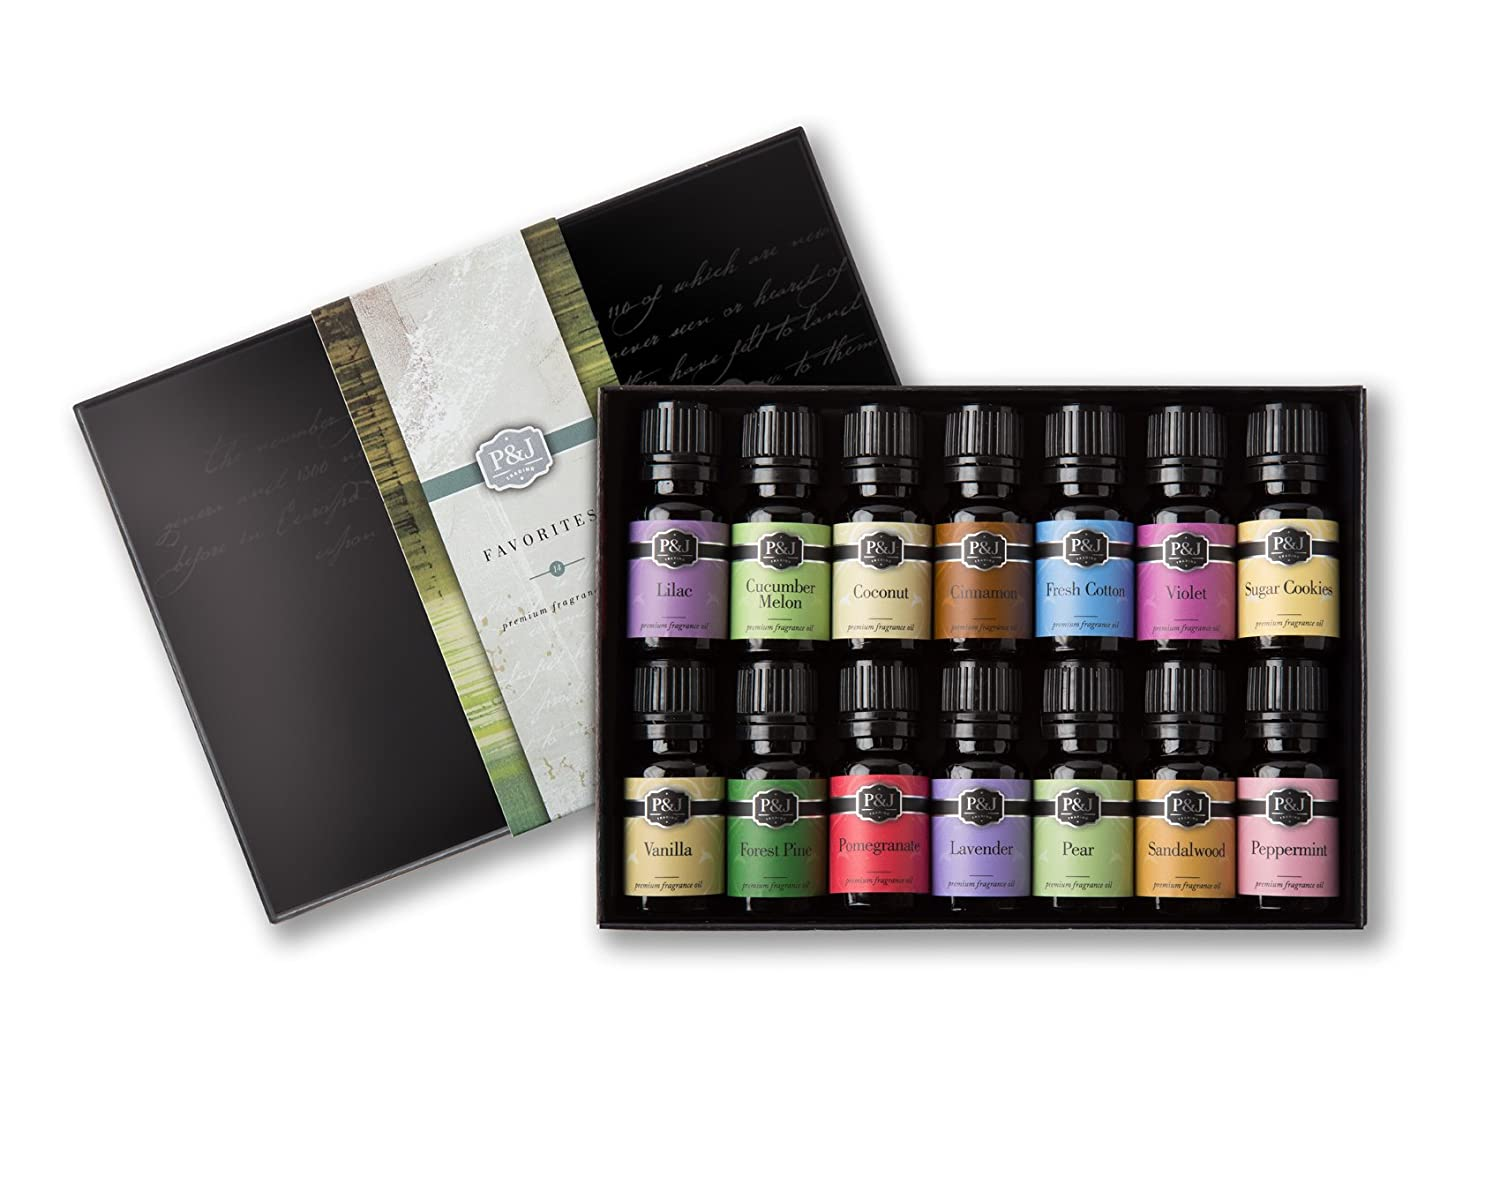 P&J Trading Favorites Set of 14 Premium Grade Fragrance Oils - 10ml